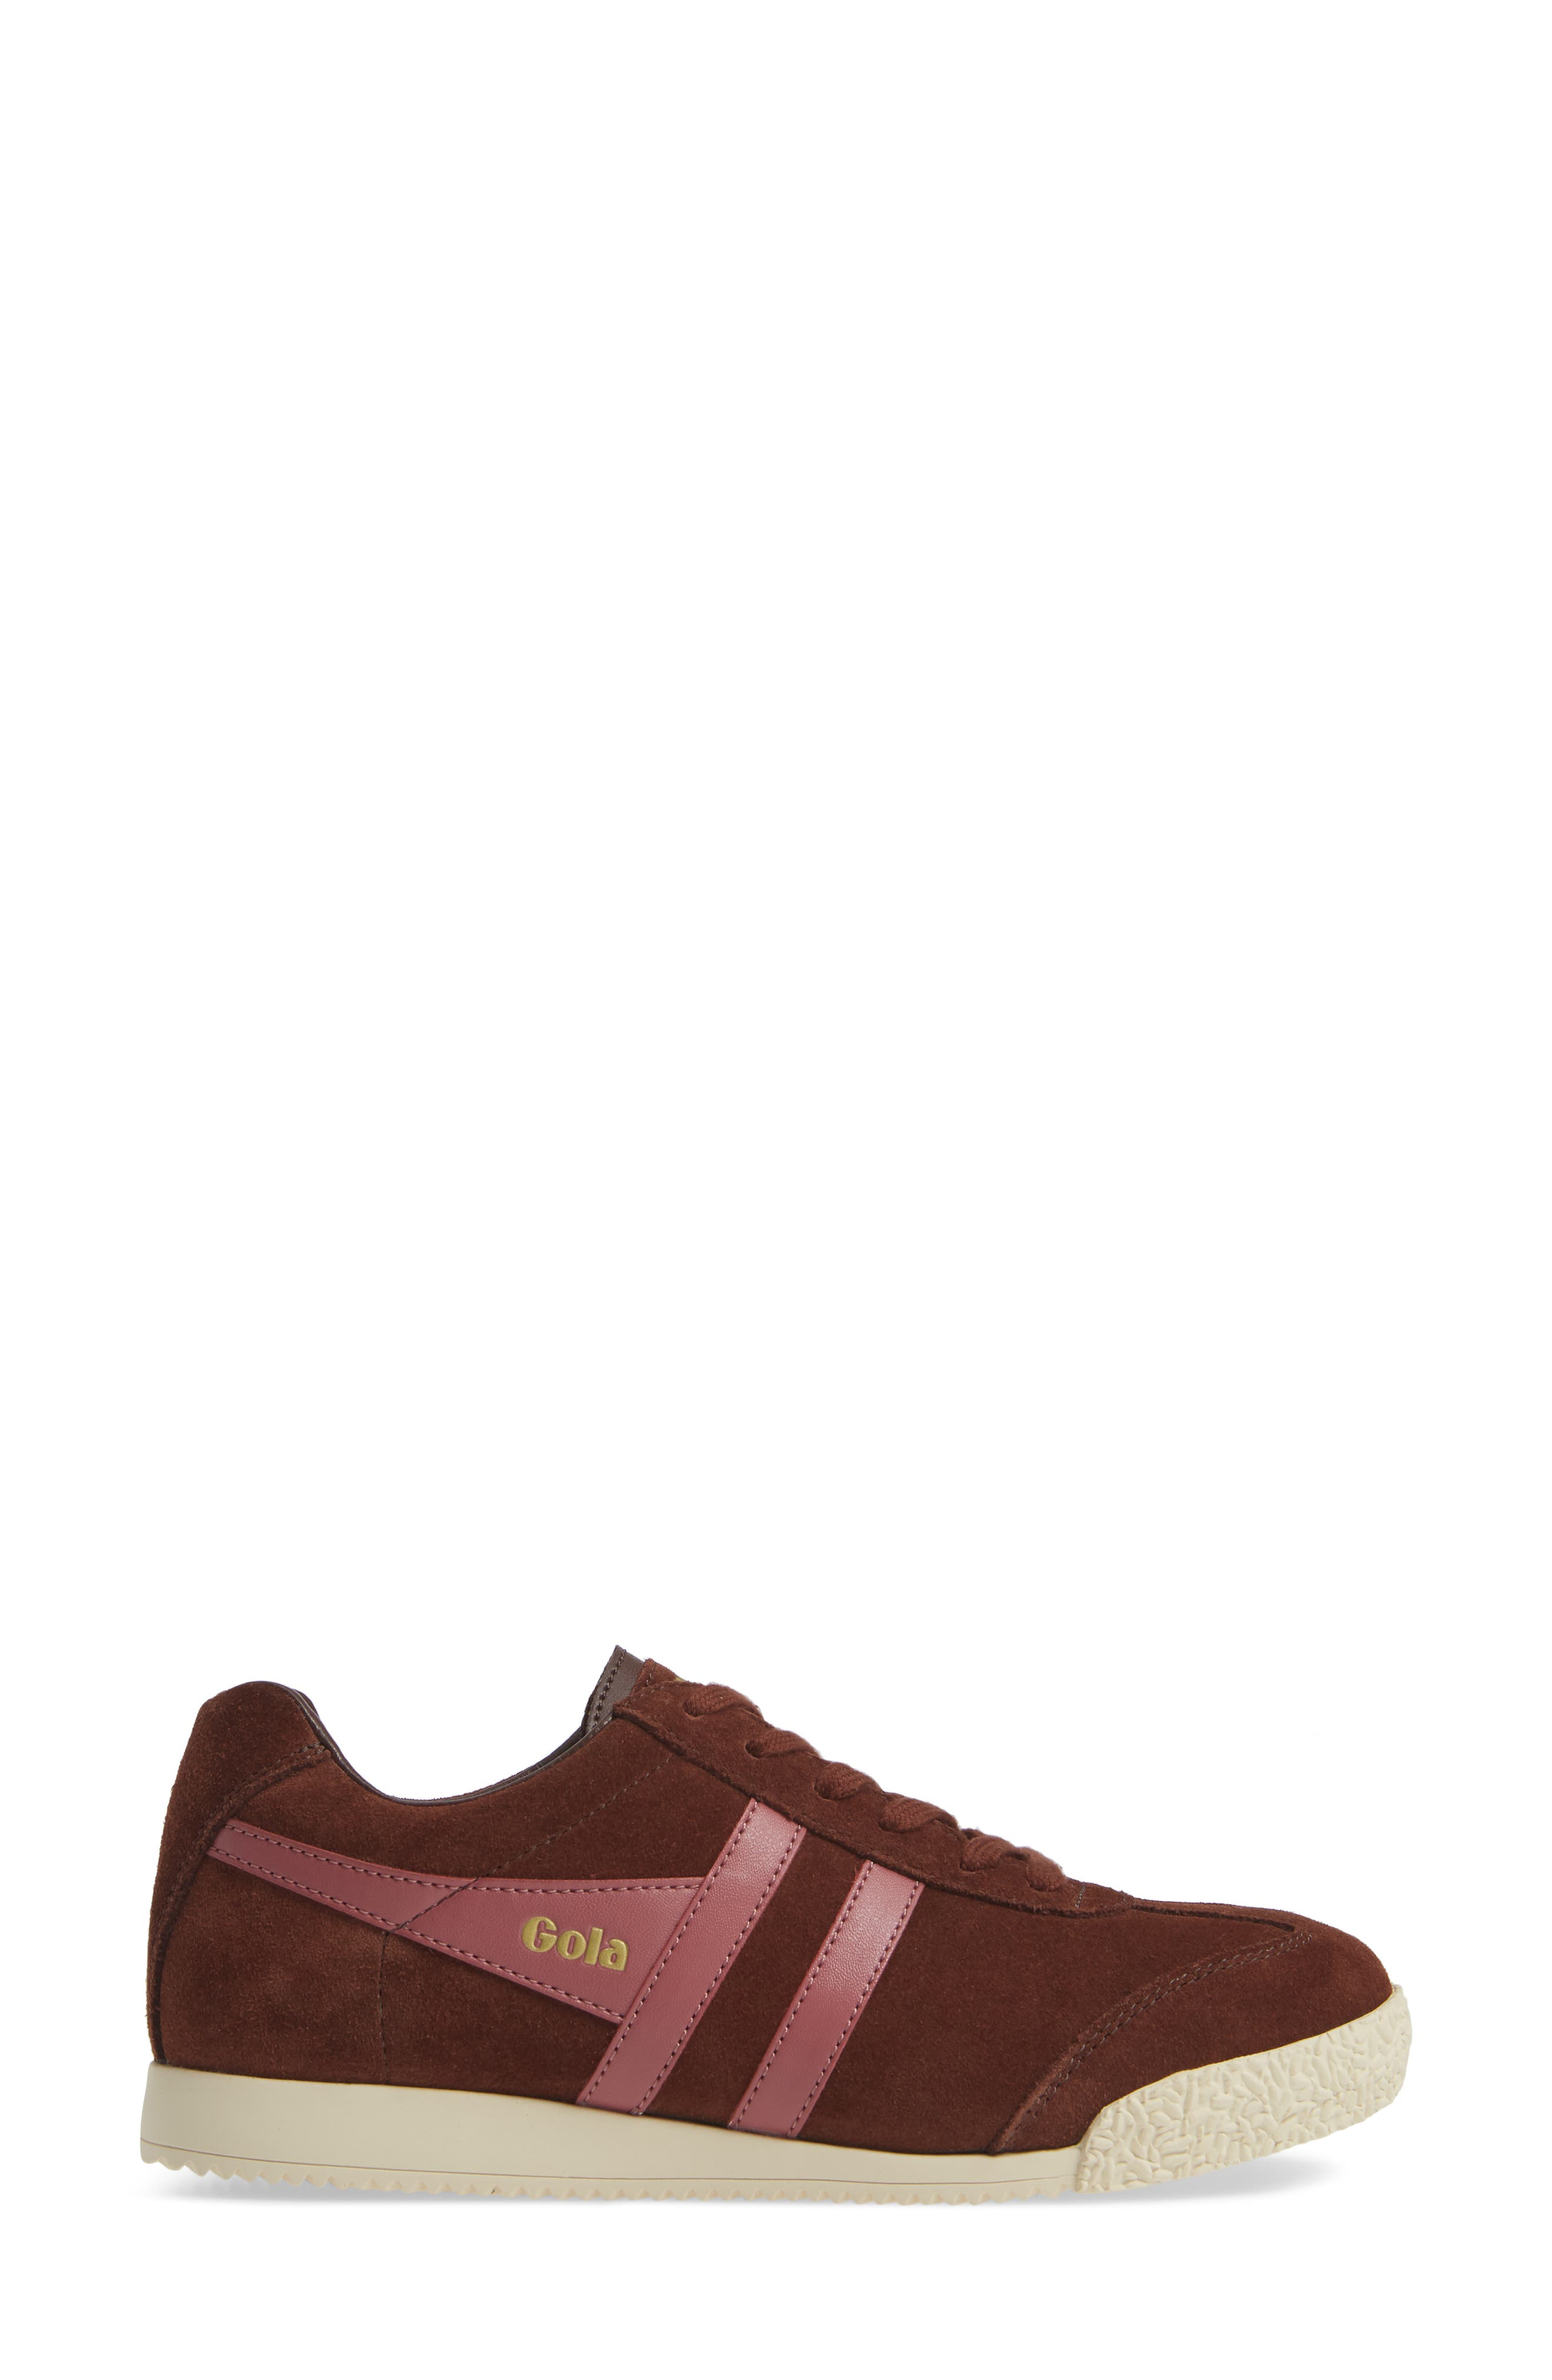 Harrier Suede Low Top Sneaker,                             Alternate thumbnail 3, color,                             COGNAC/ DUSTY ROSE